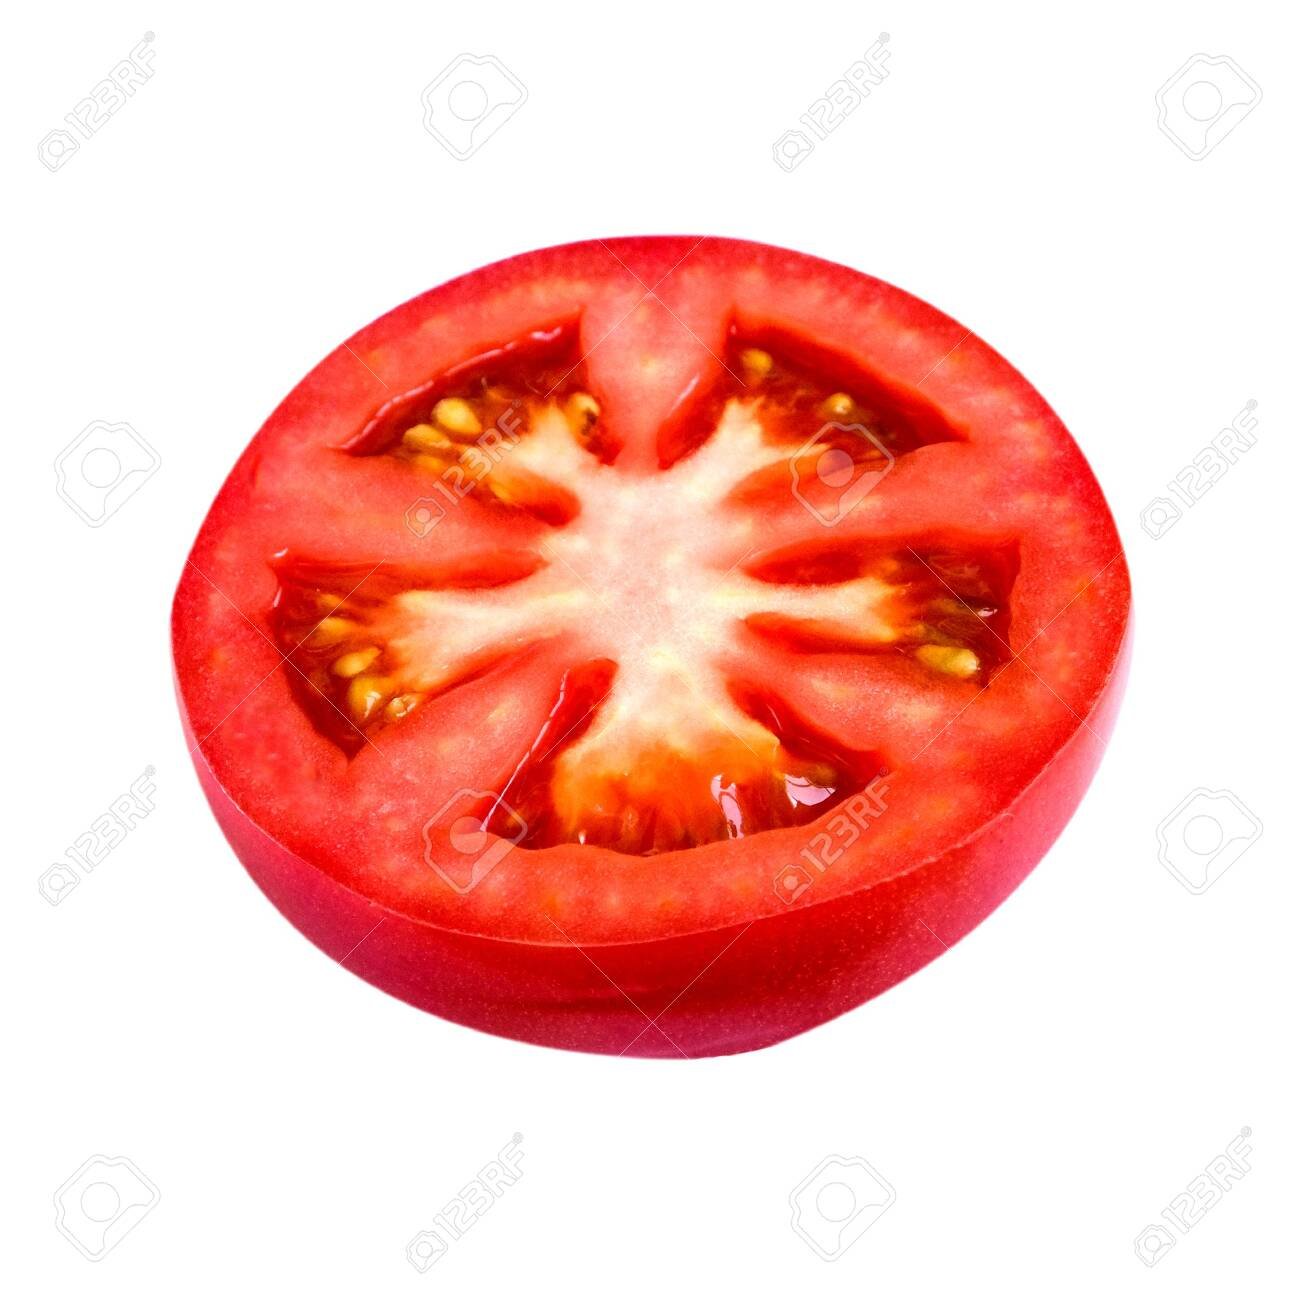 isolated cut red piece of tomato on white background - 131876074